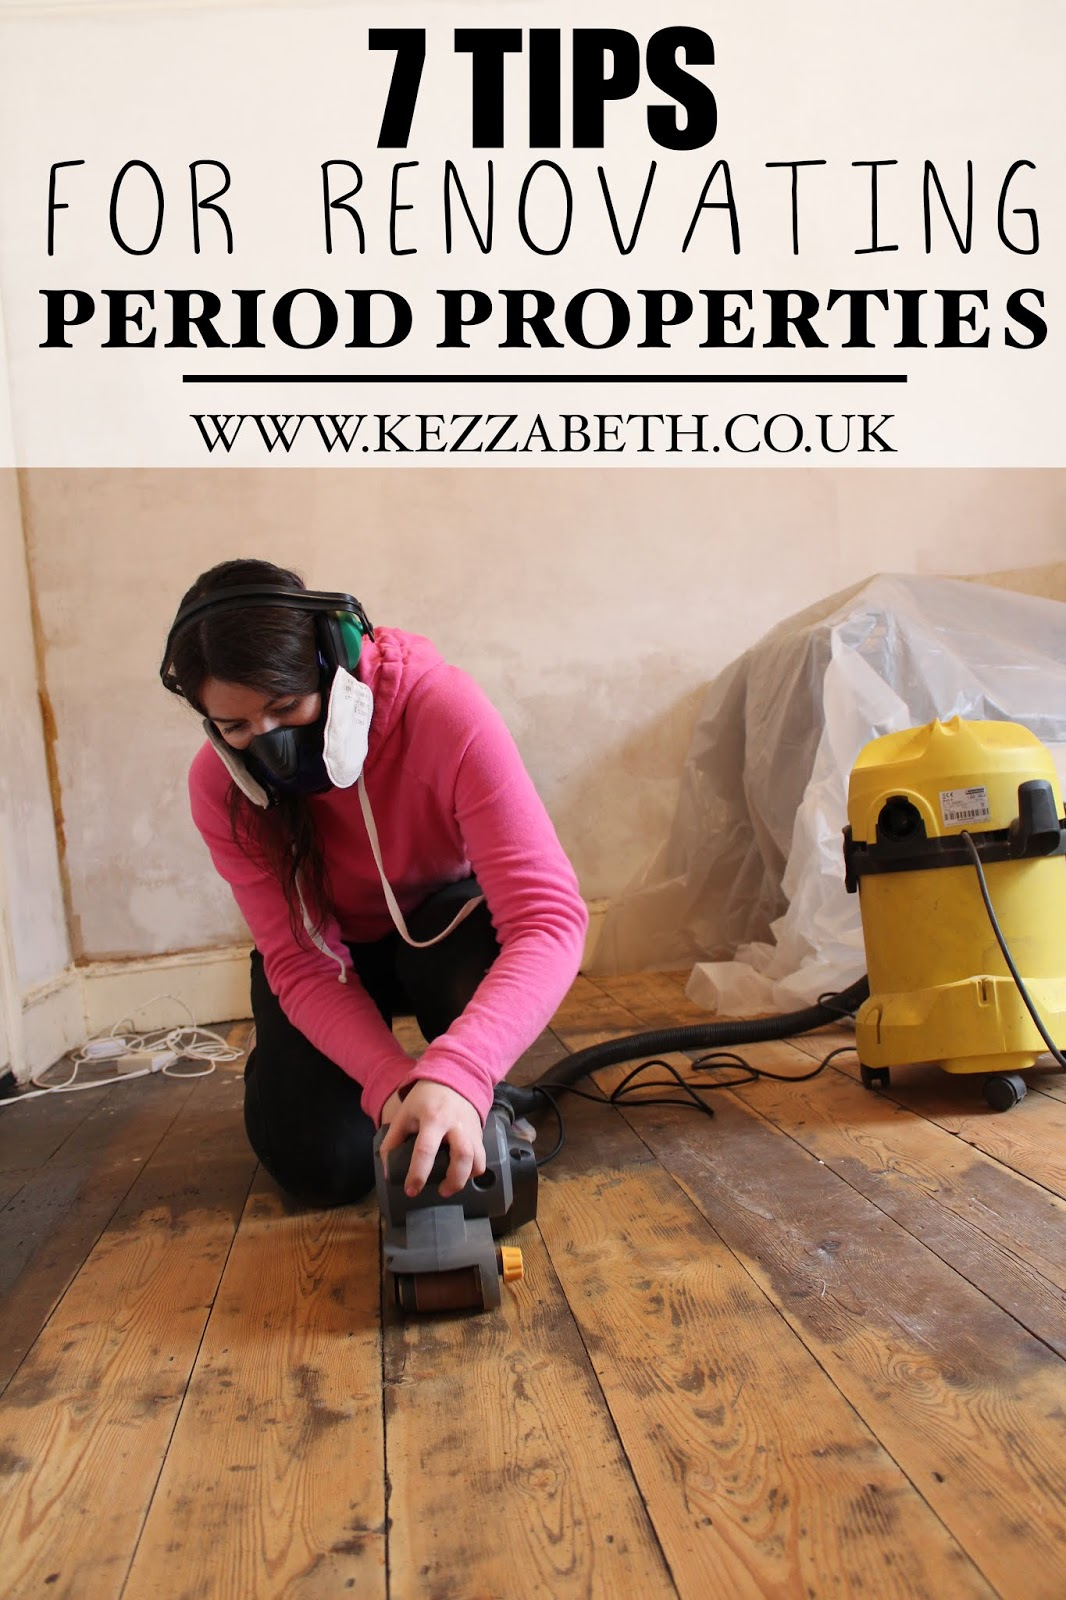 Tips for Renovating Period Properties